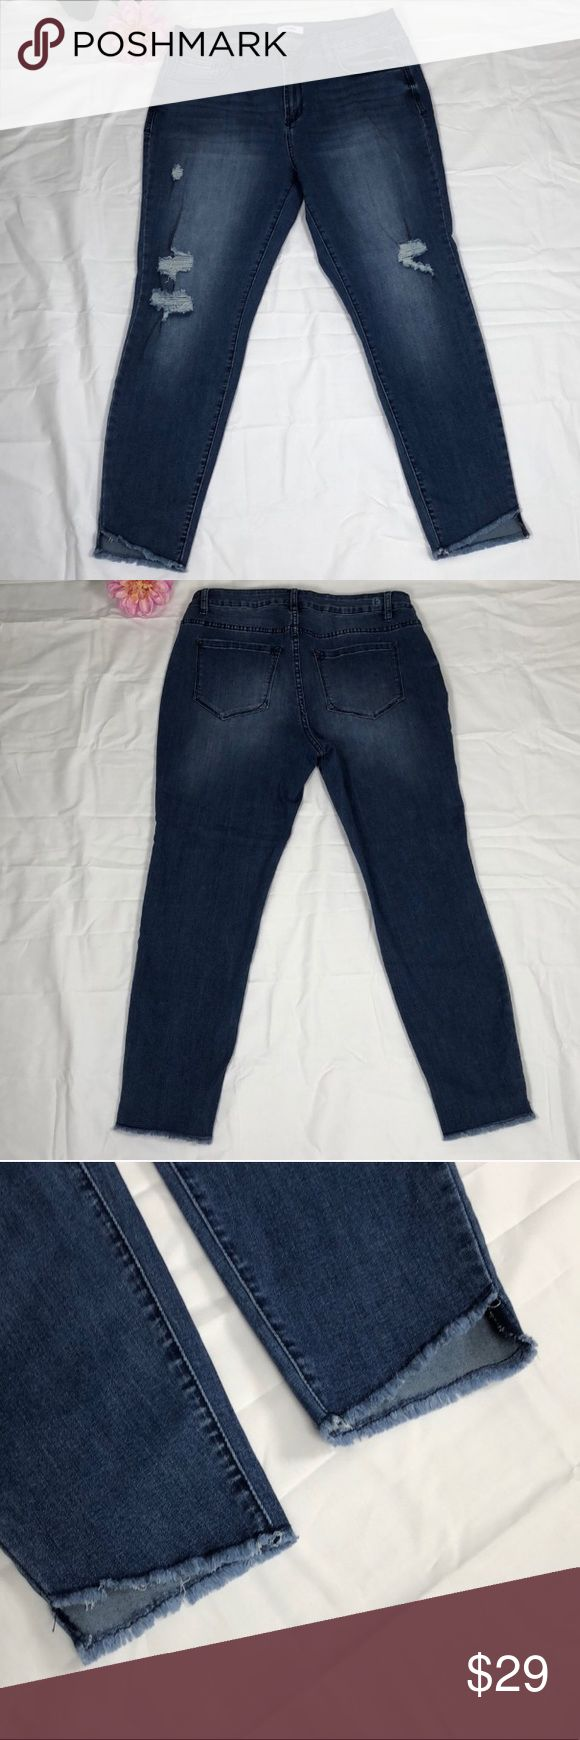 Kensie Jeans Kensie ripped jeans with frayed hems, excellent condition Kensie Jeans